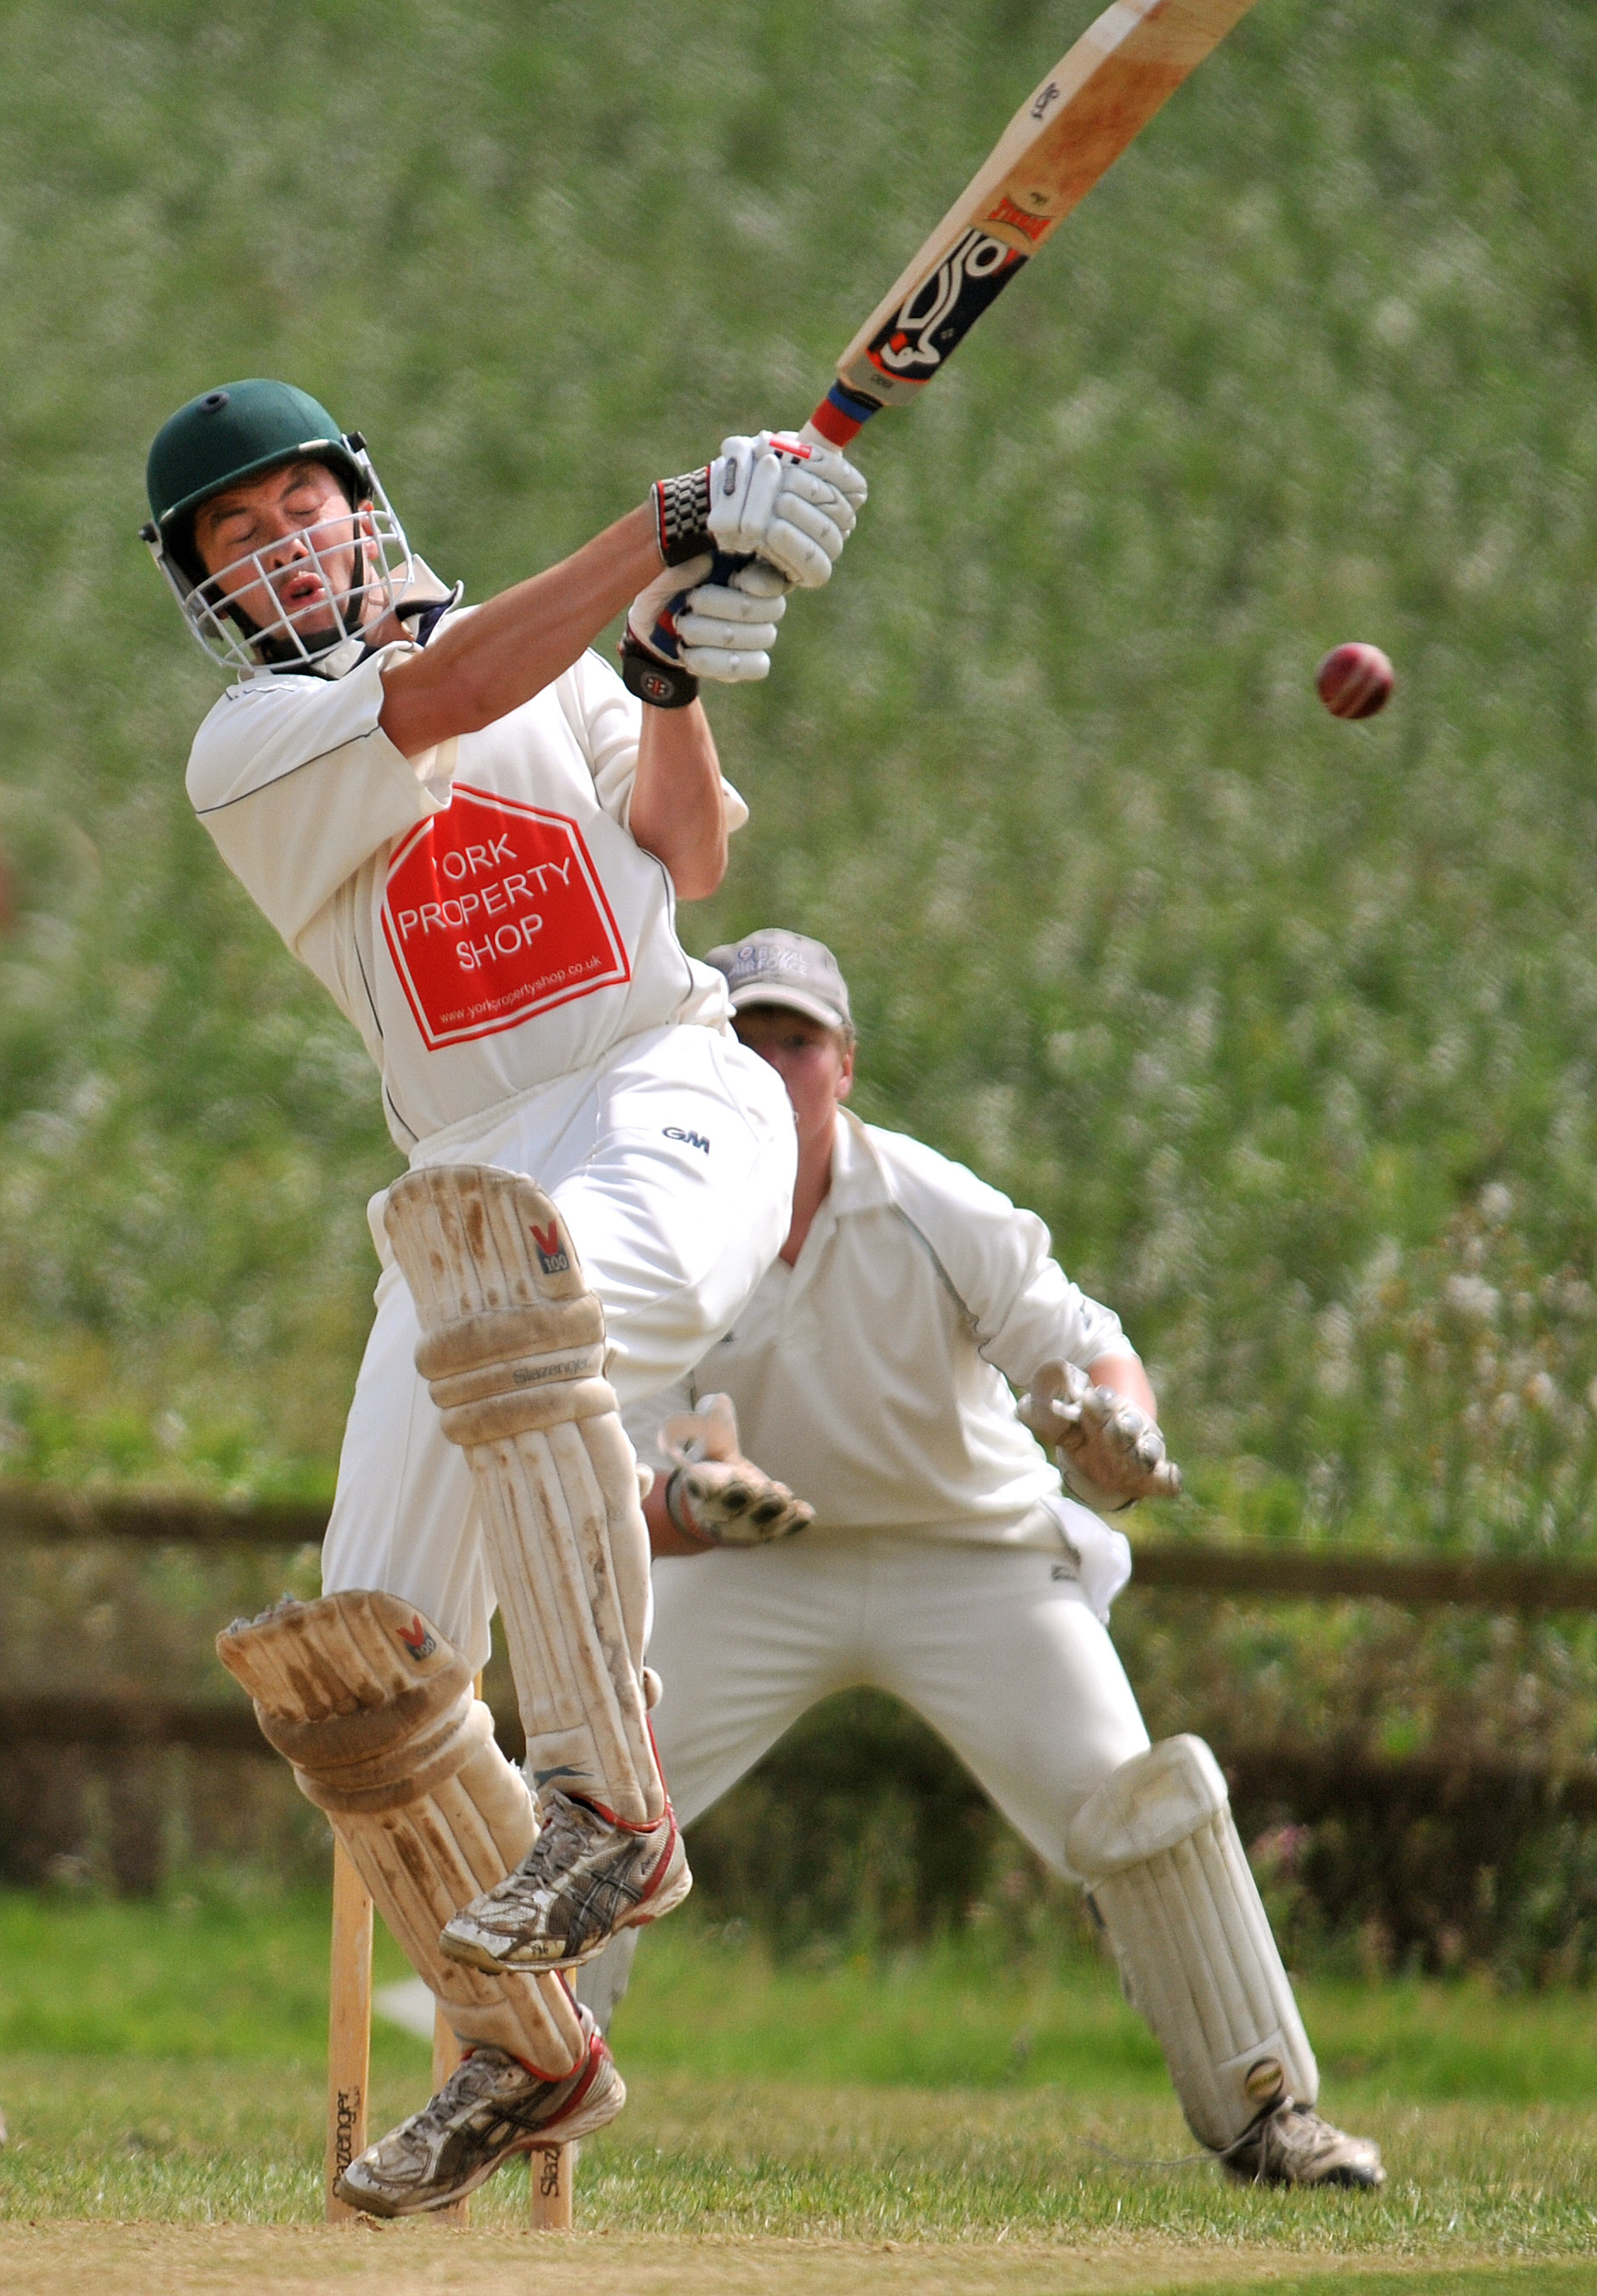 Vale Cricket League: Unbeaten run Ov-er to let in new leaders